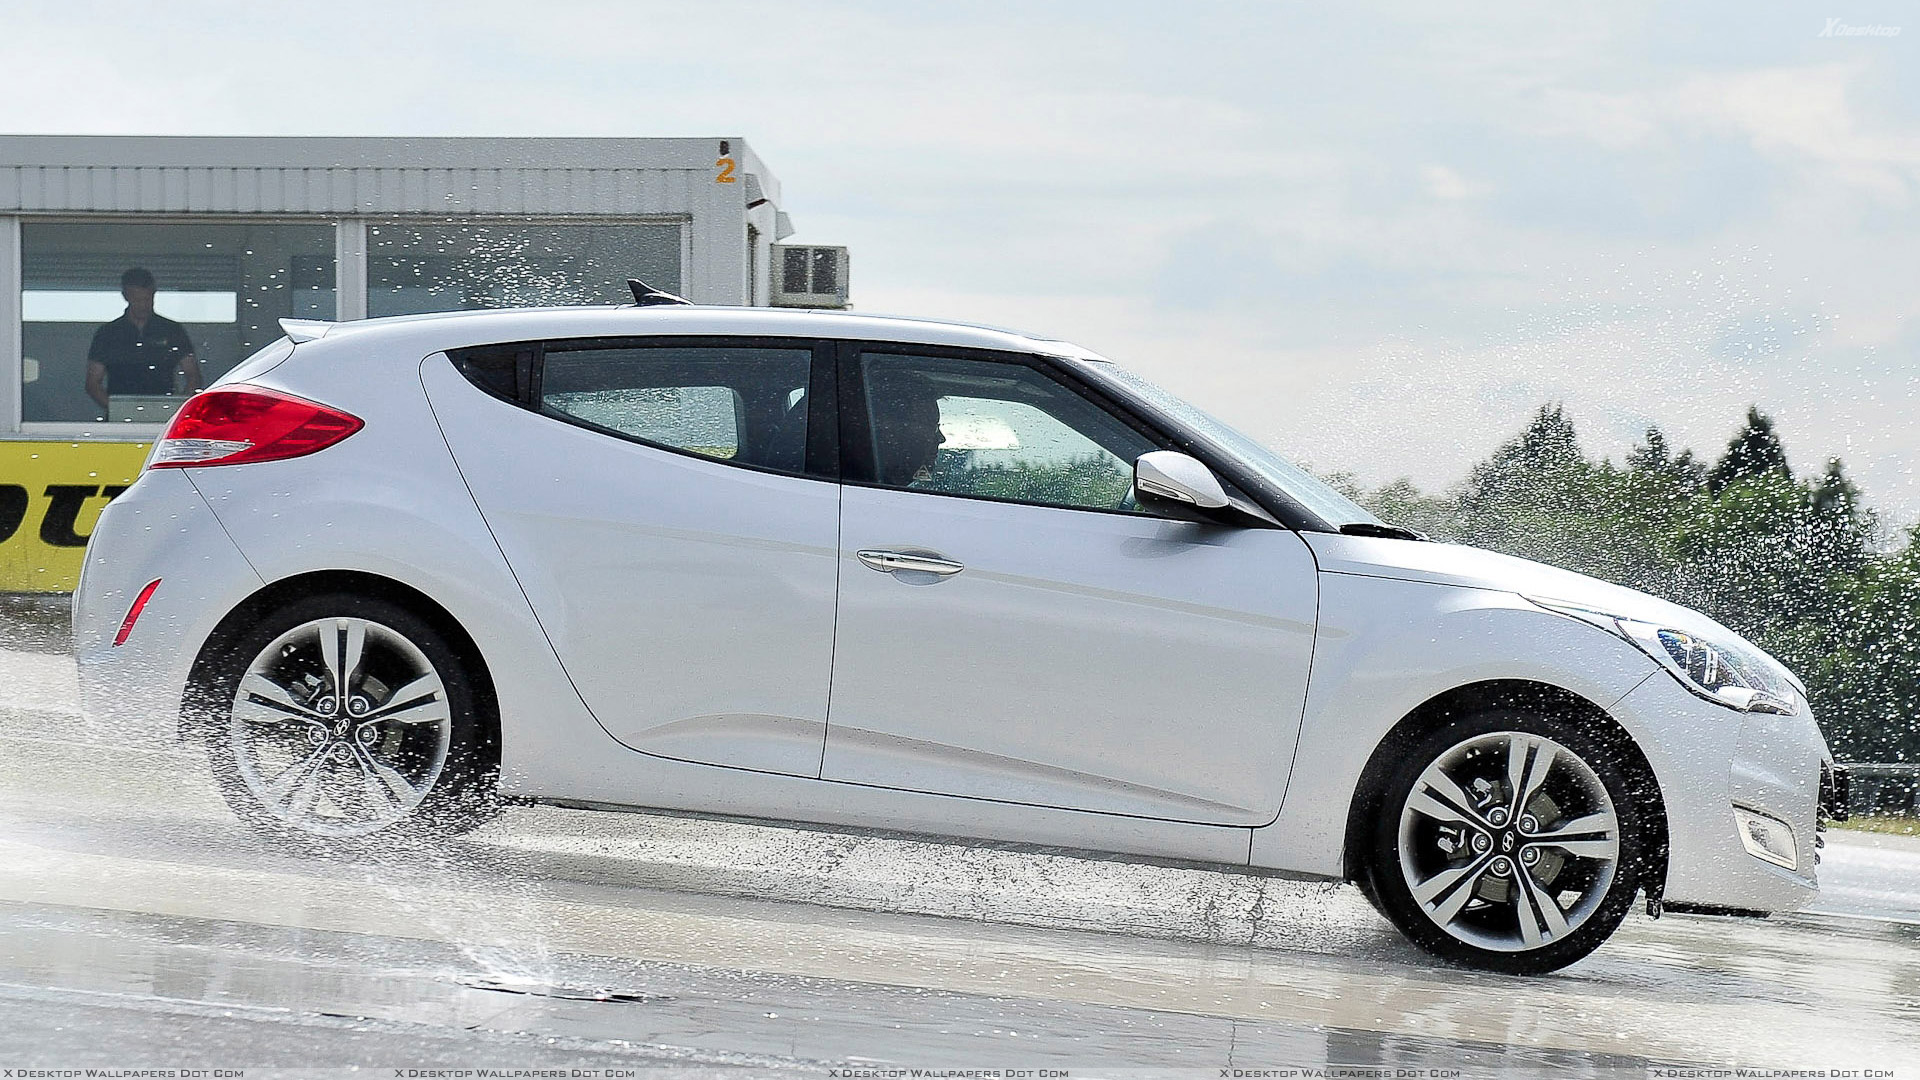 Hyundai Veloster Wallpapers Photos Images in HD 1920x1080